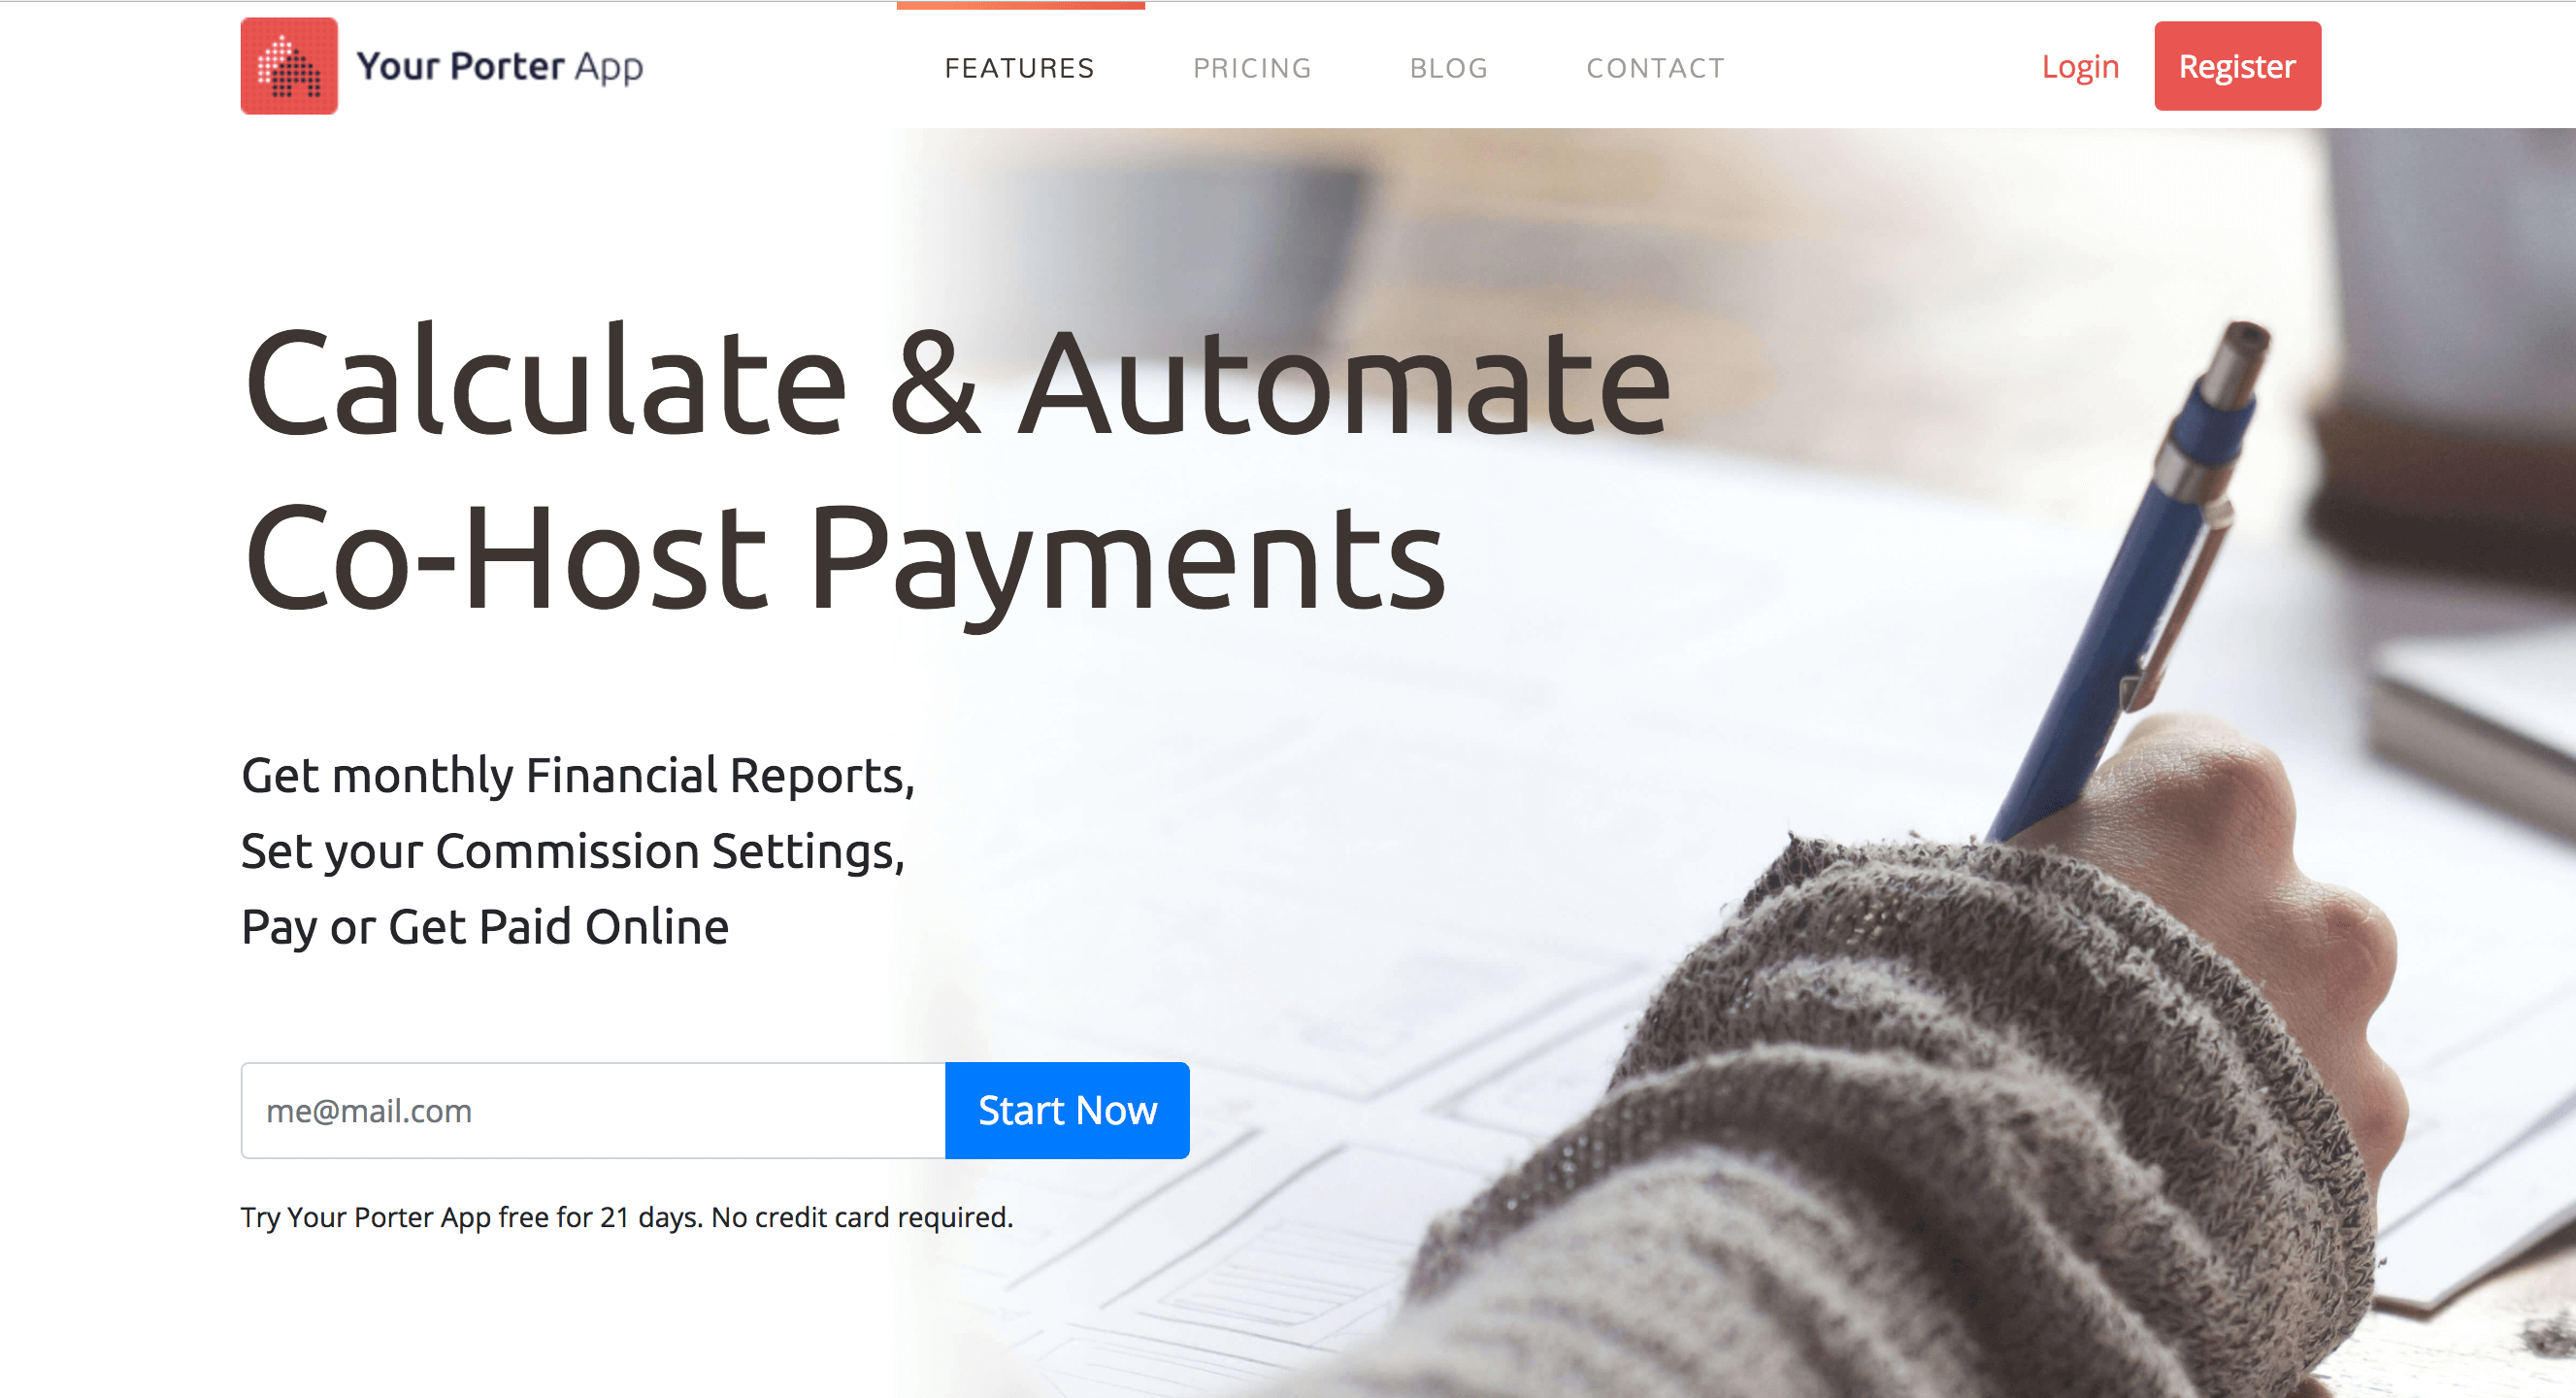 Income Reports and Co-host Payments